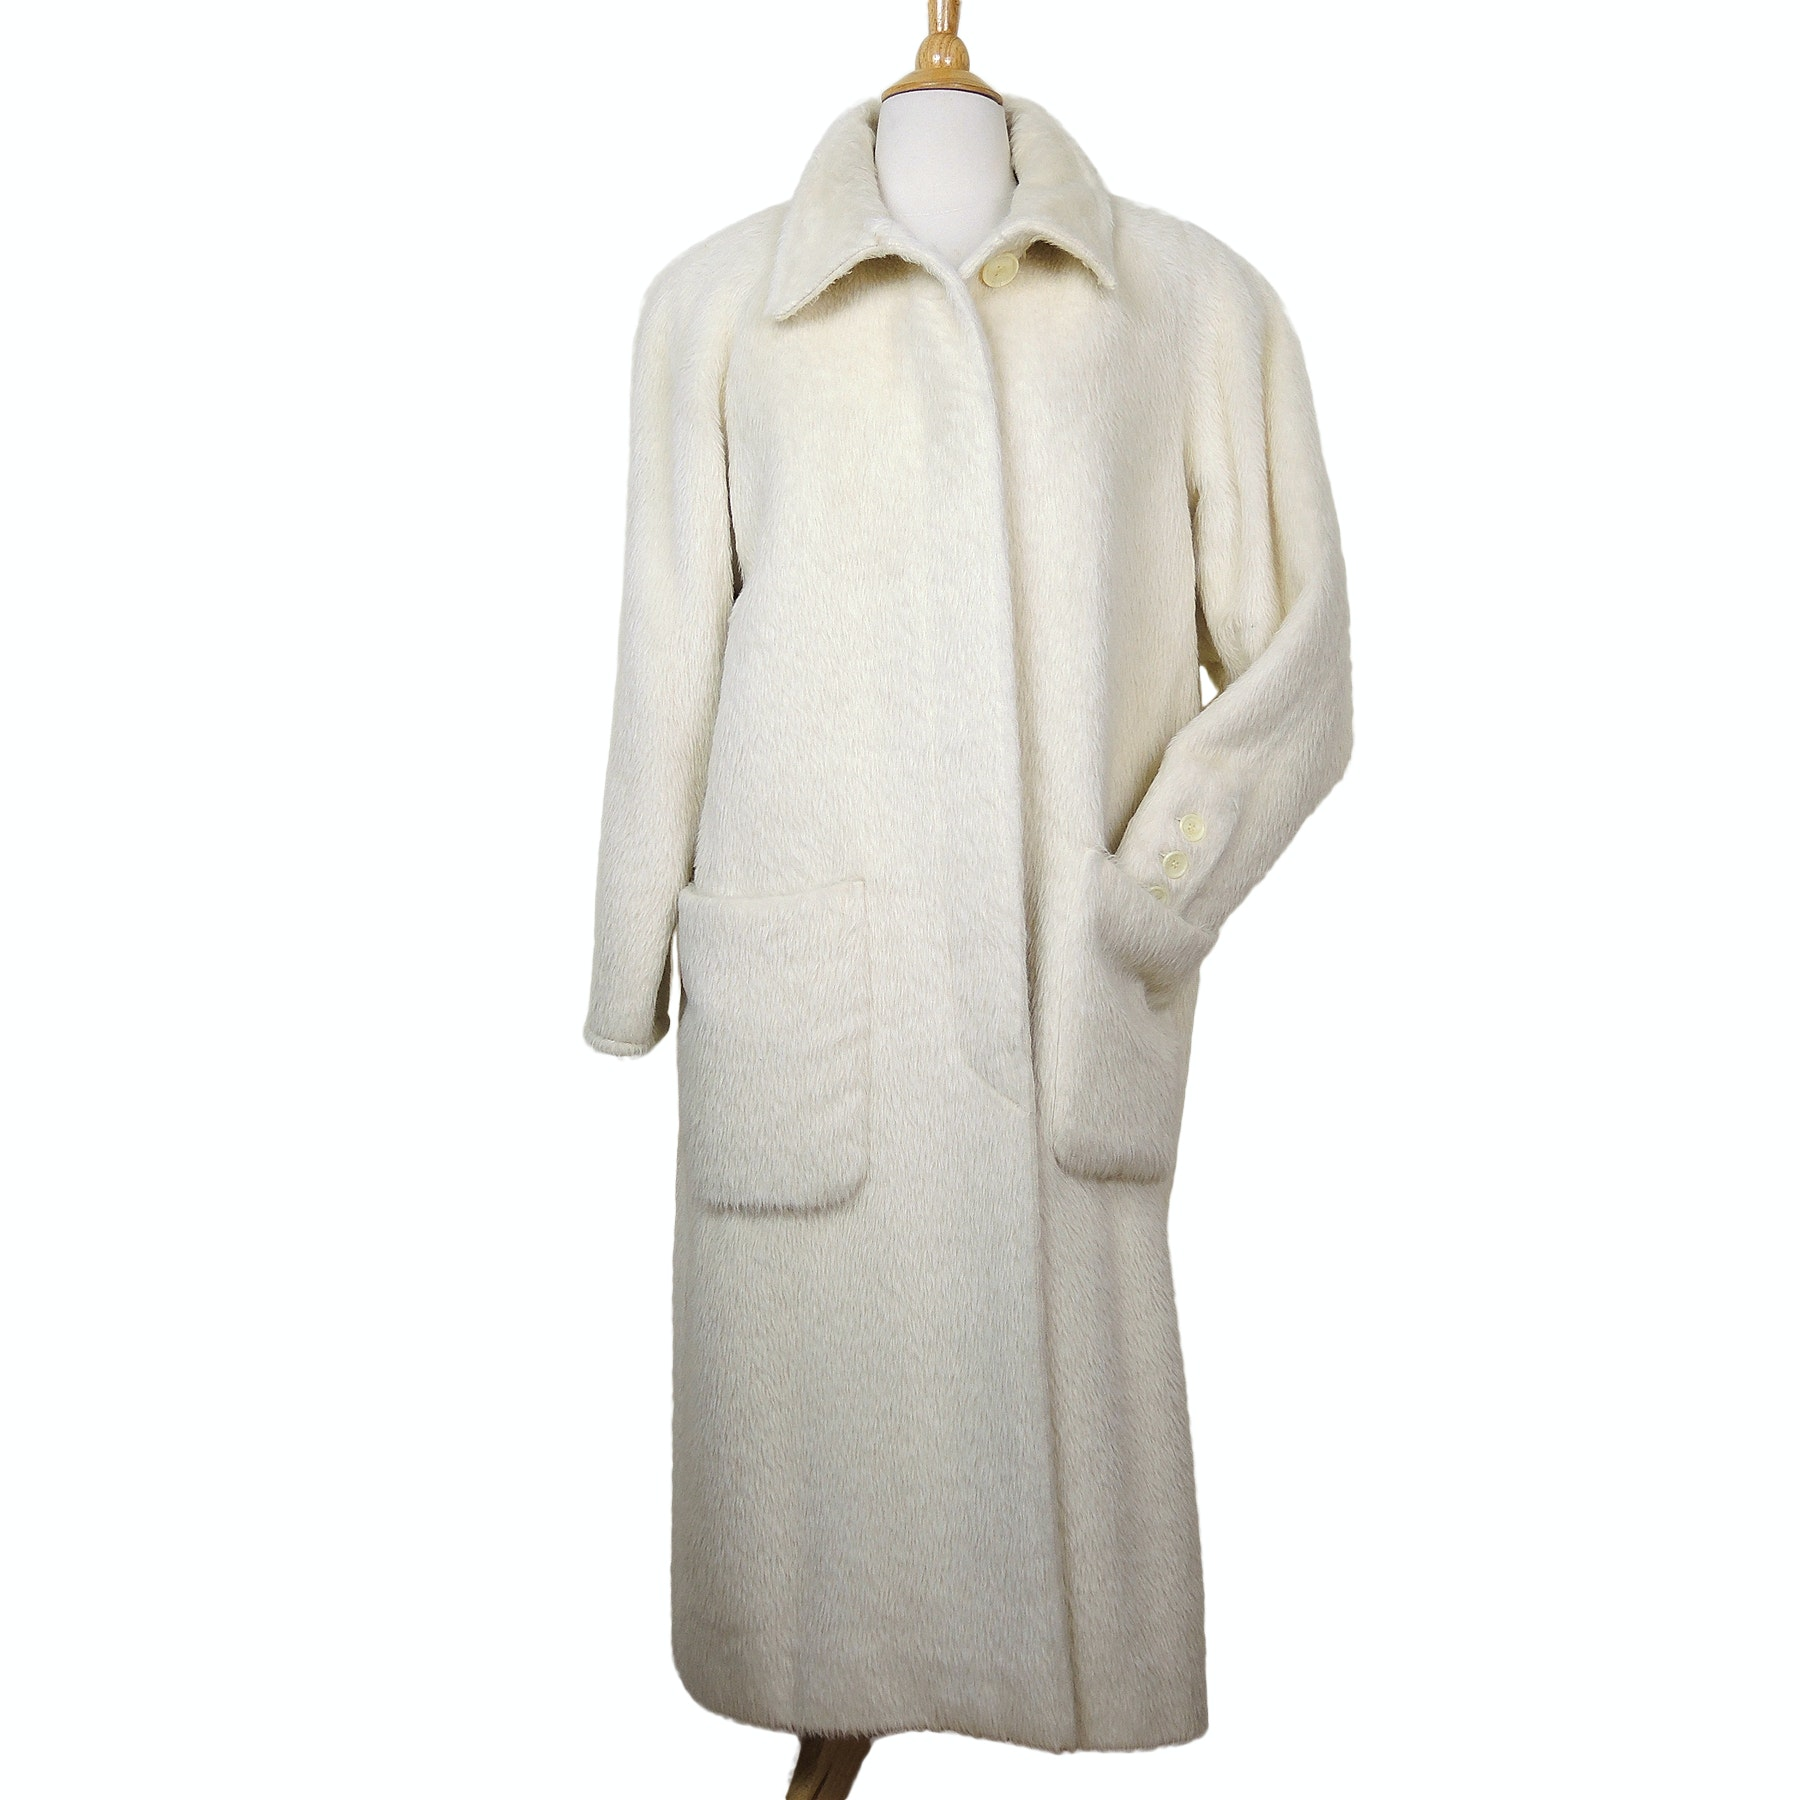 Women's Agnona Italian Alpaca Wool Blend Coat Made for Saks Fifth Avenue